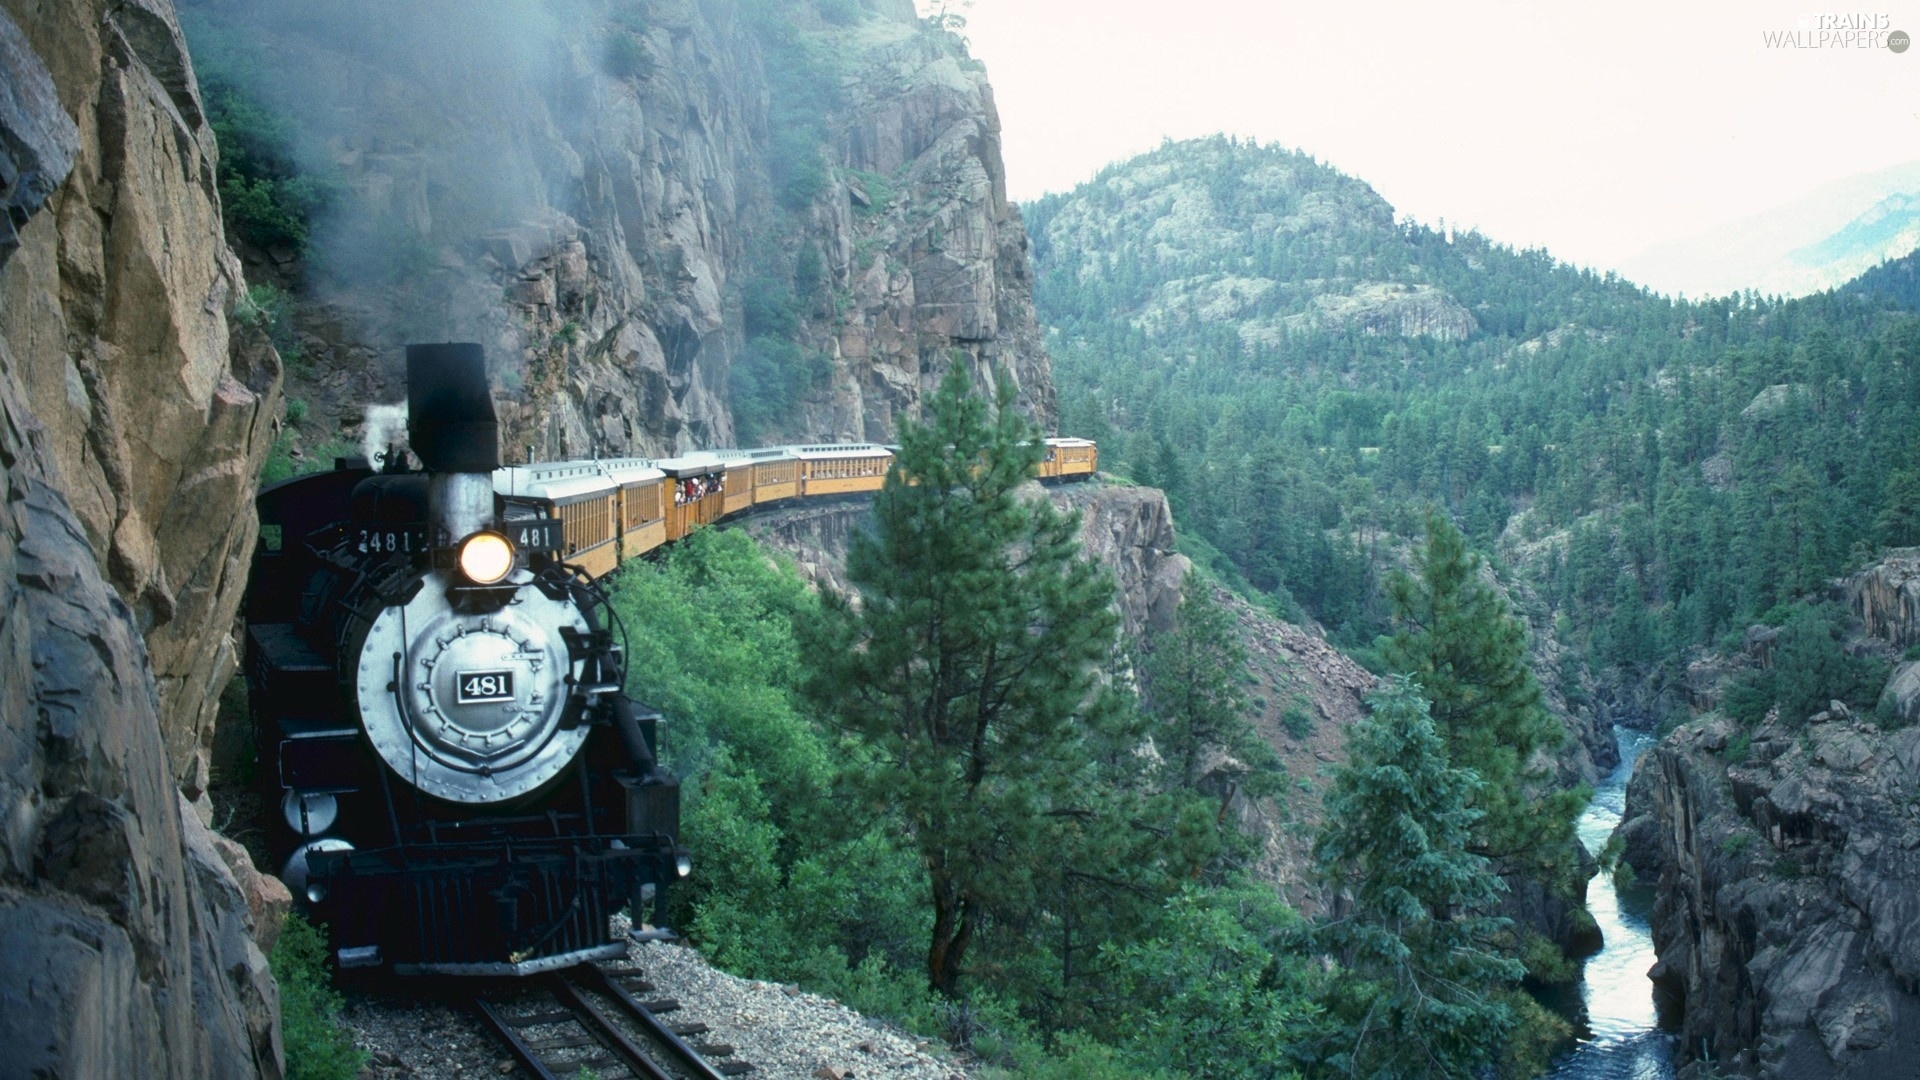 Train, Mountains, rocks